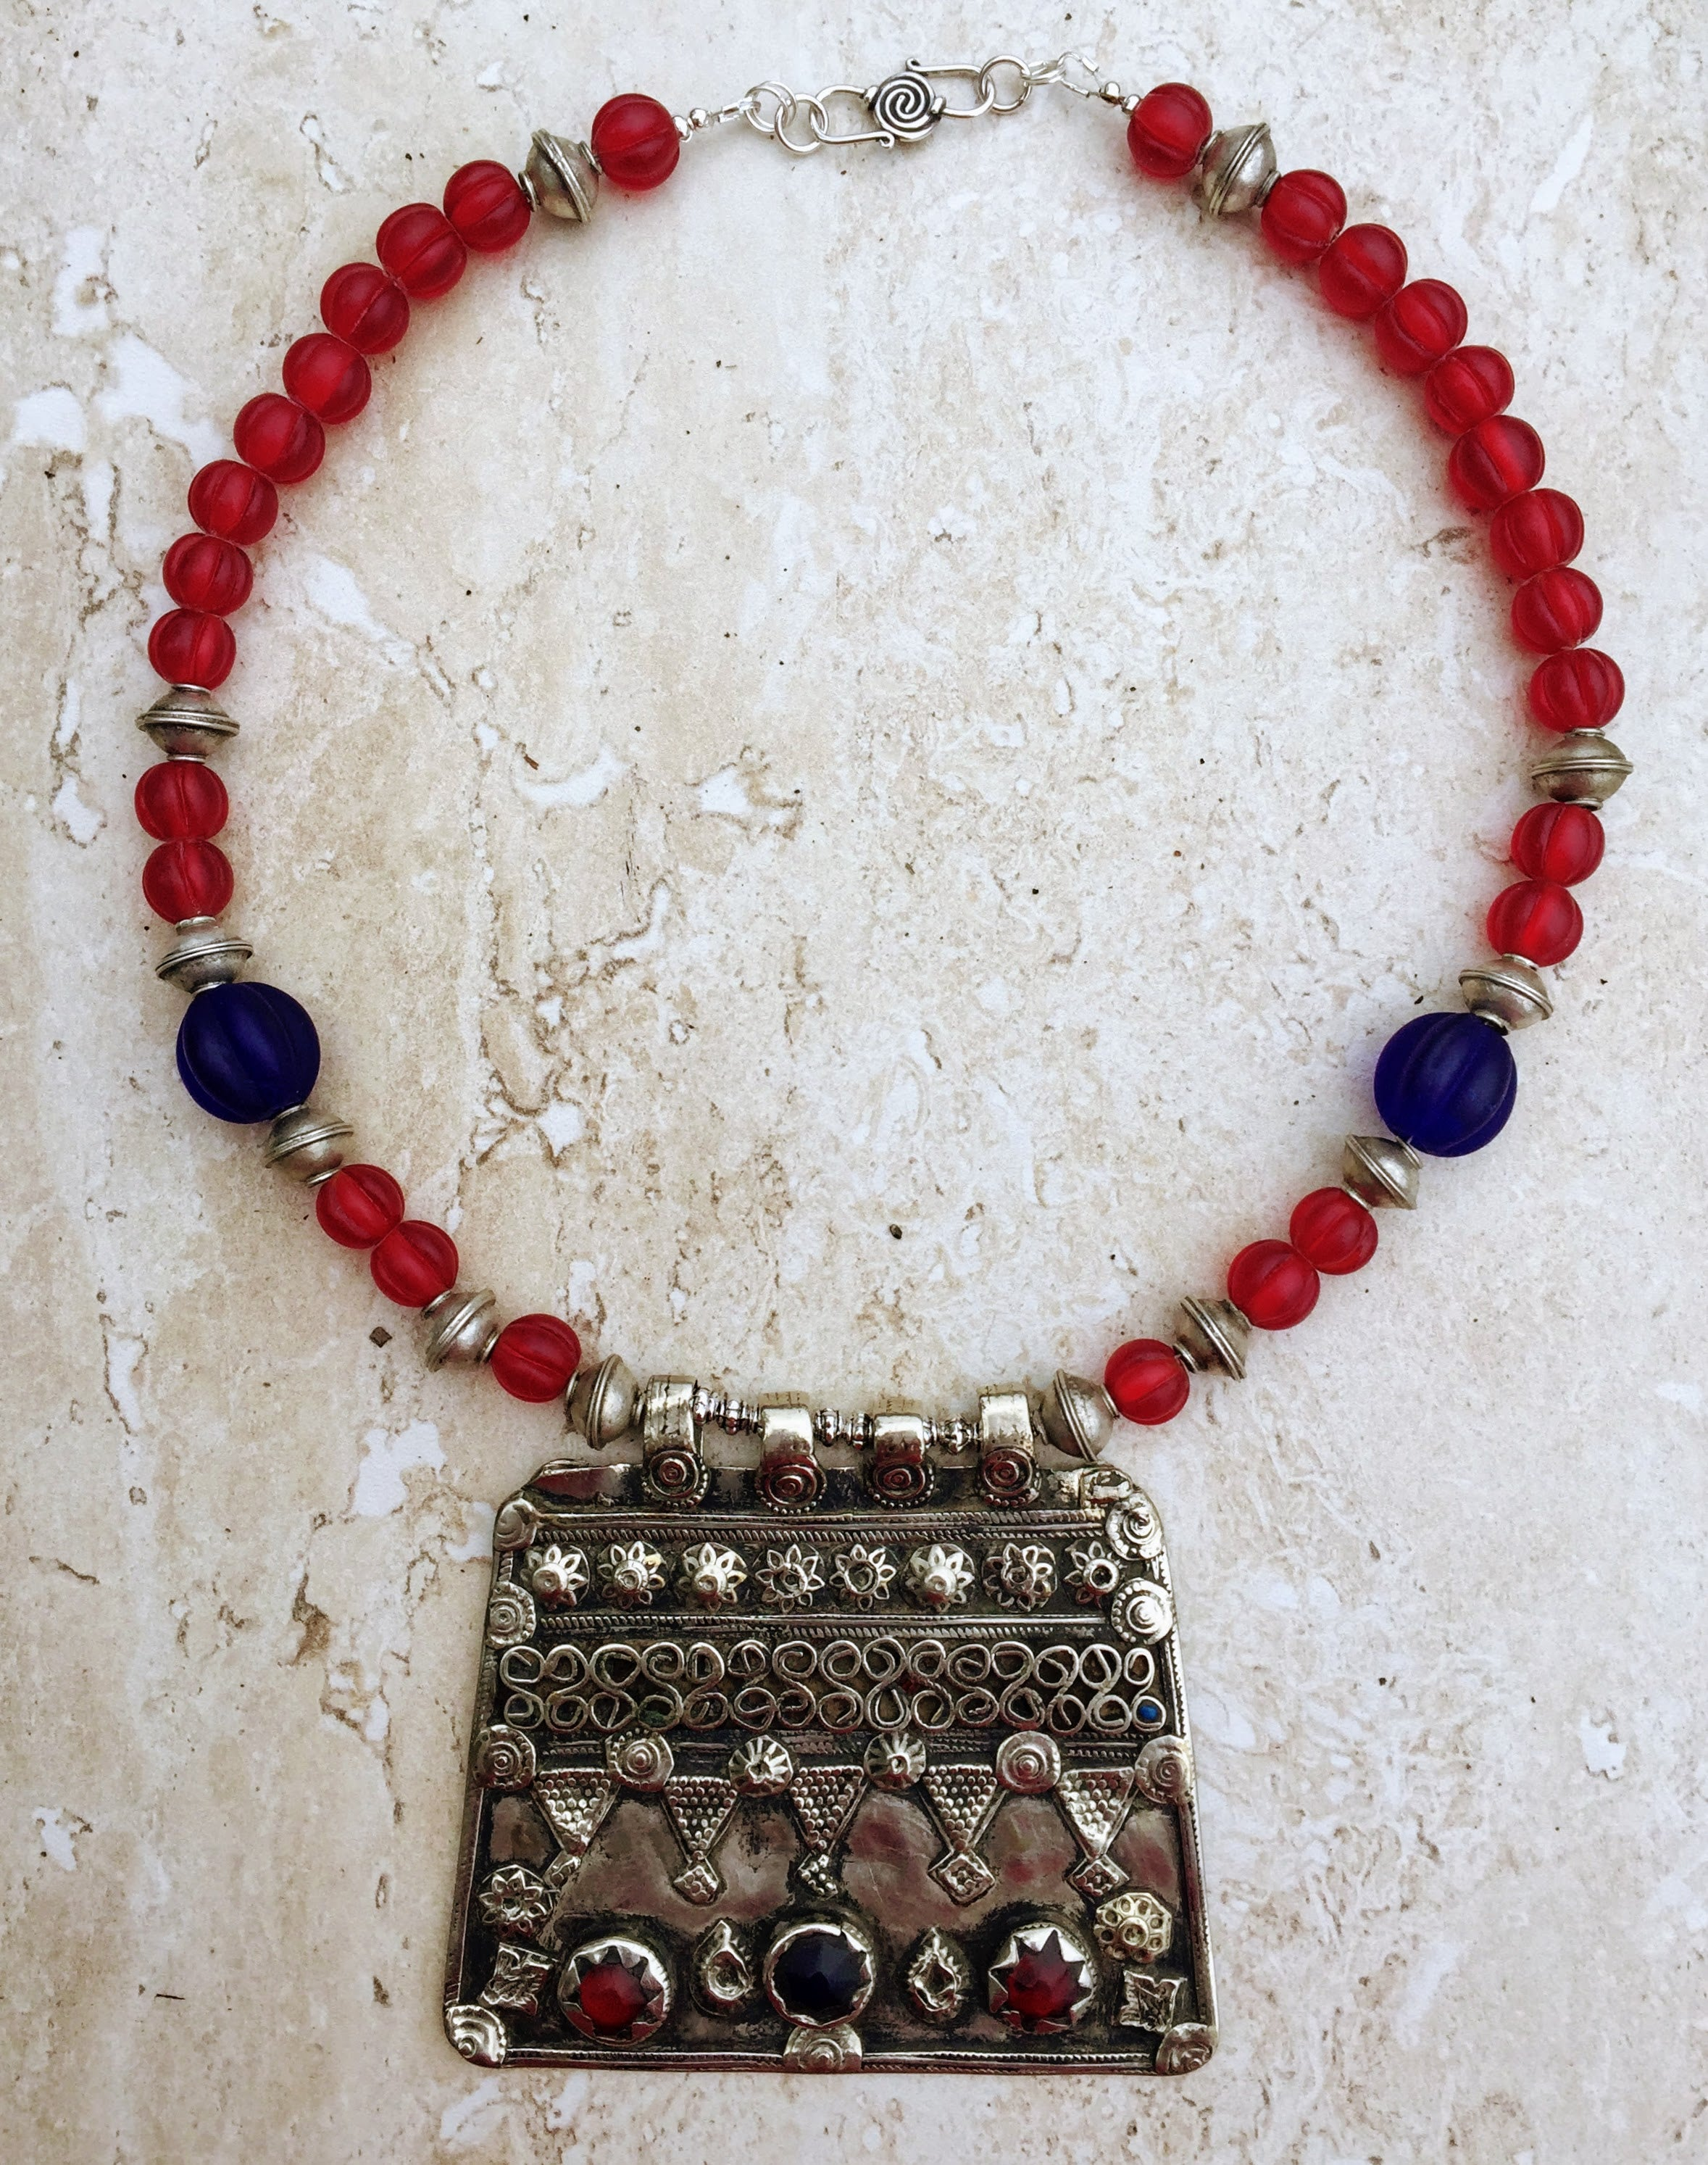 berber metal necklace yemen antique img lazem from